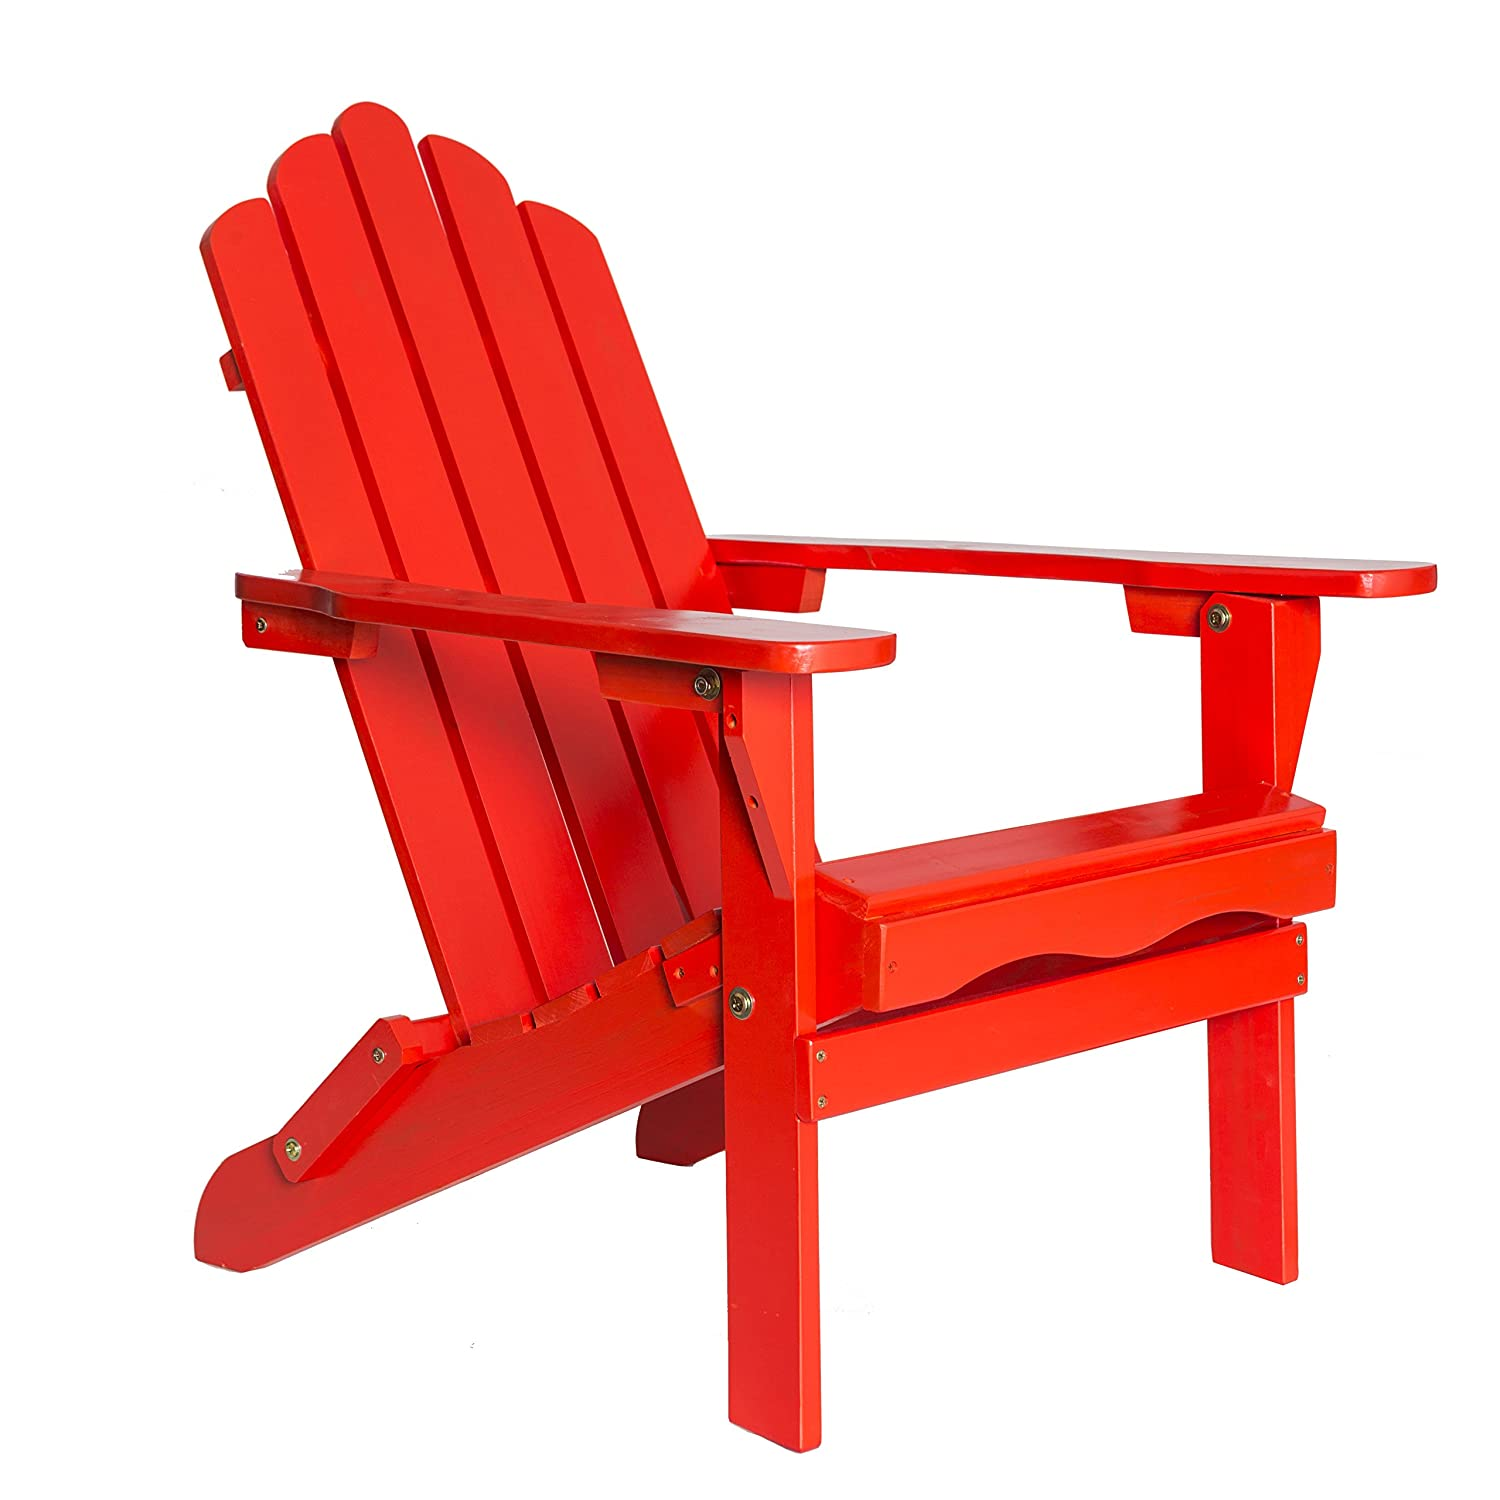 Enjoyable Amazon Com Table In A Bag Red Wood Folding Adirondack Squirreltailoven Fun Painted Chair Ideas Images Squirreltailovenorg